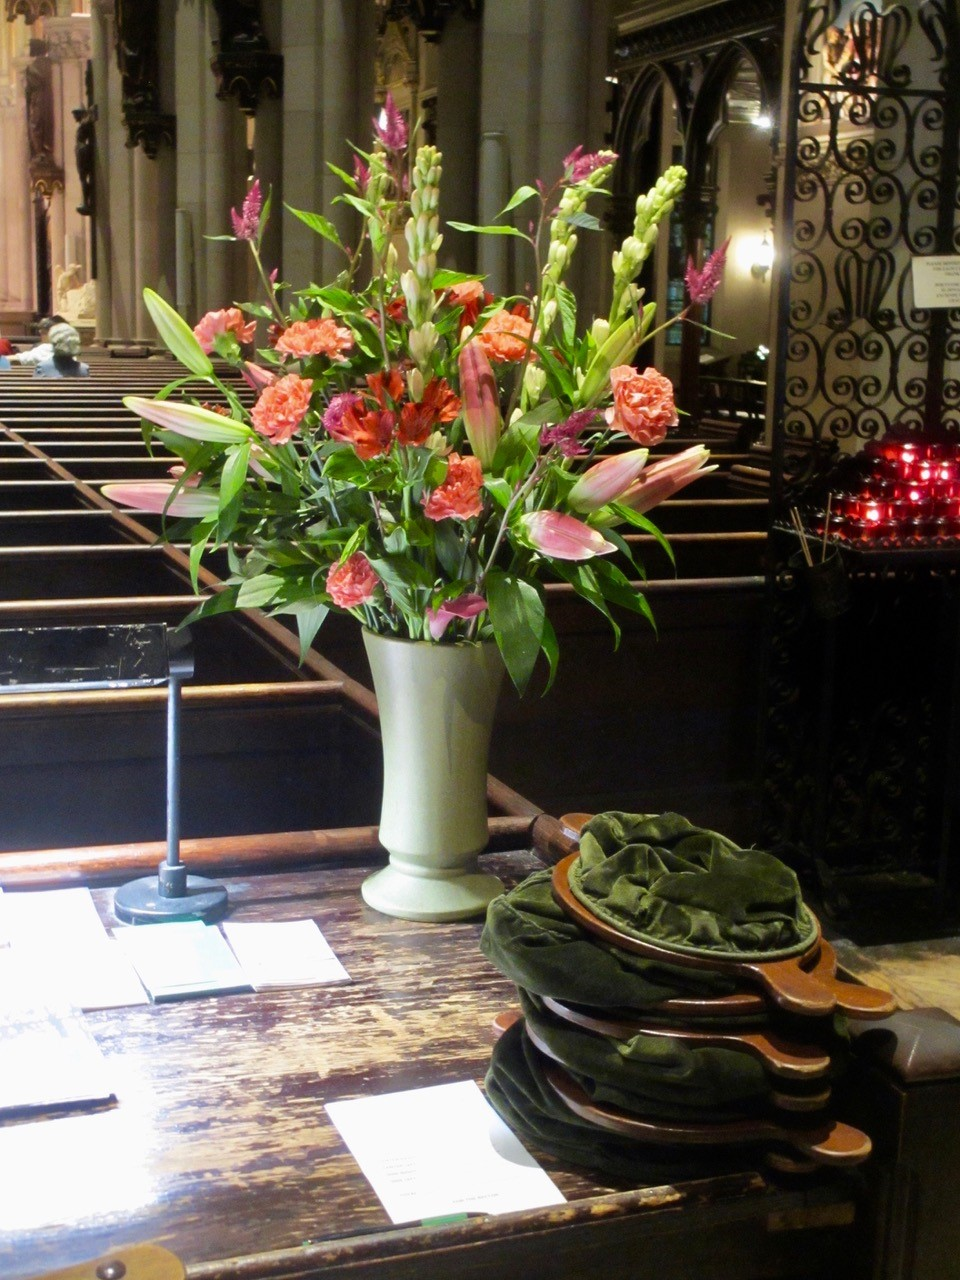 Last Sunday the flowers on the altar and in the church were given by Margaret Malone in memory of members of her family and a close friend. Design by J. Grace Mudd.  Photo:  Mary Jane Boland.